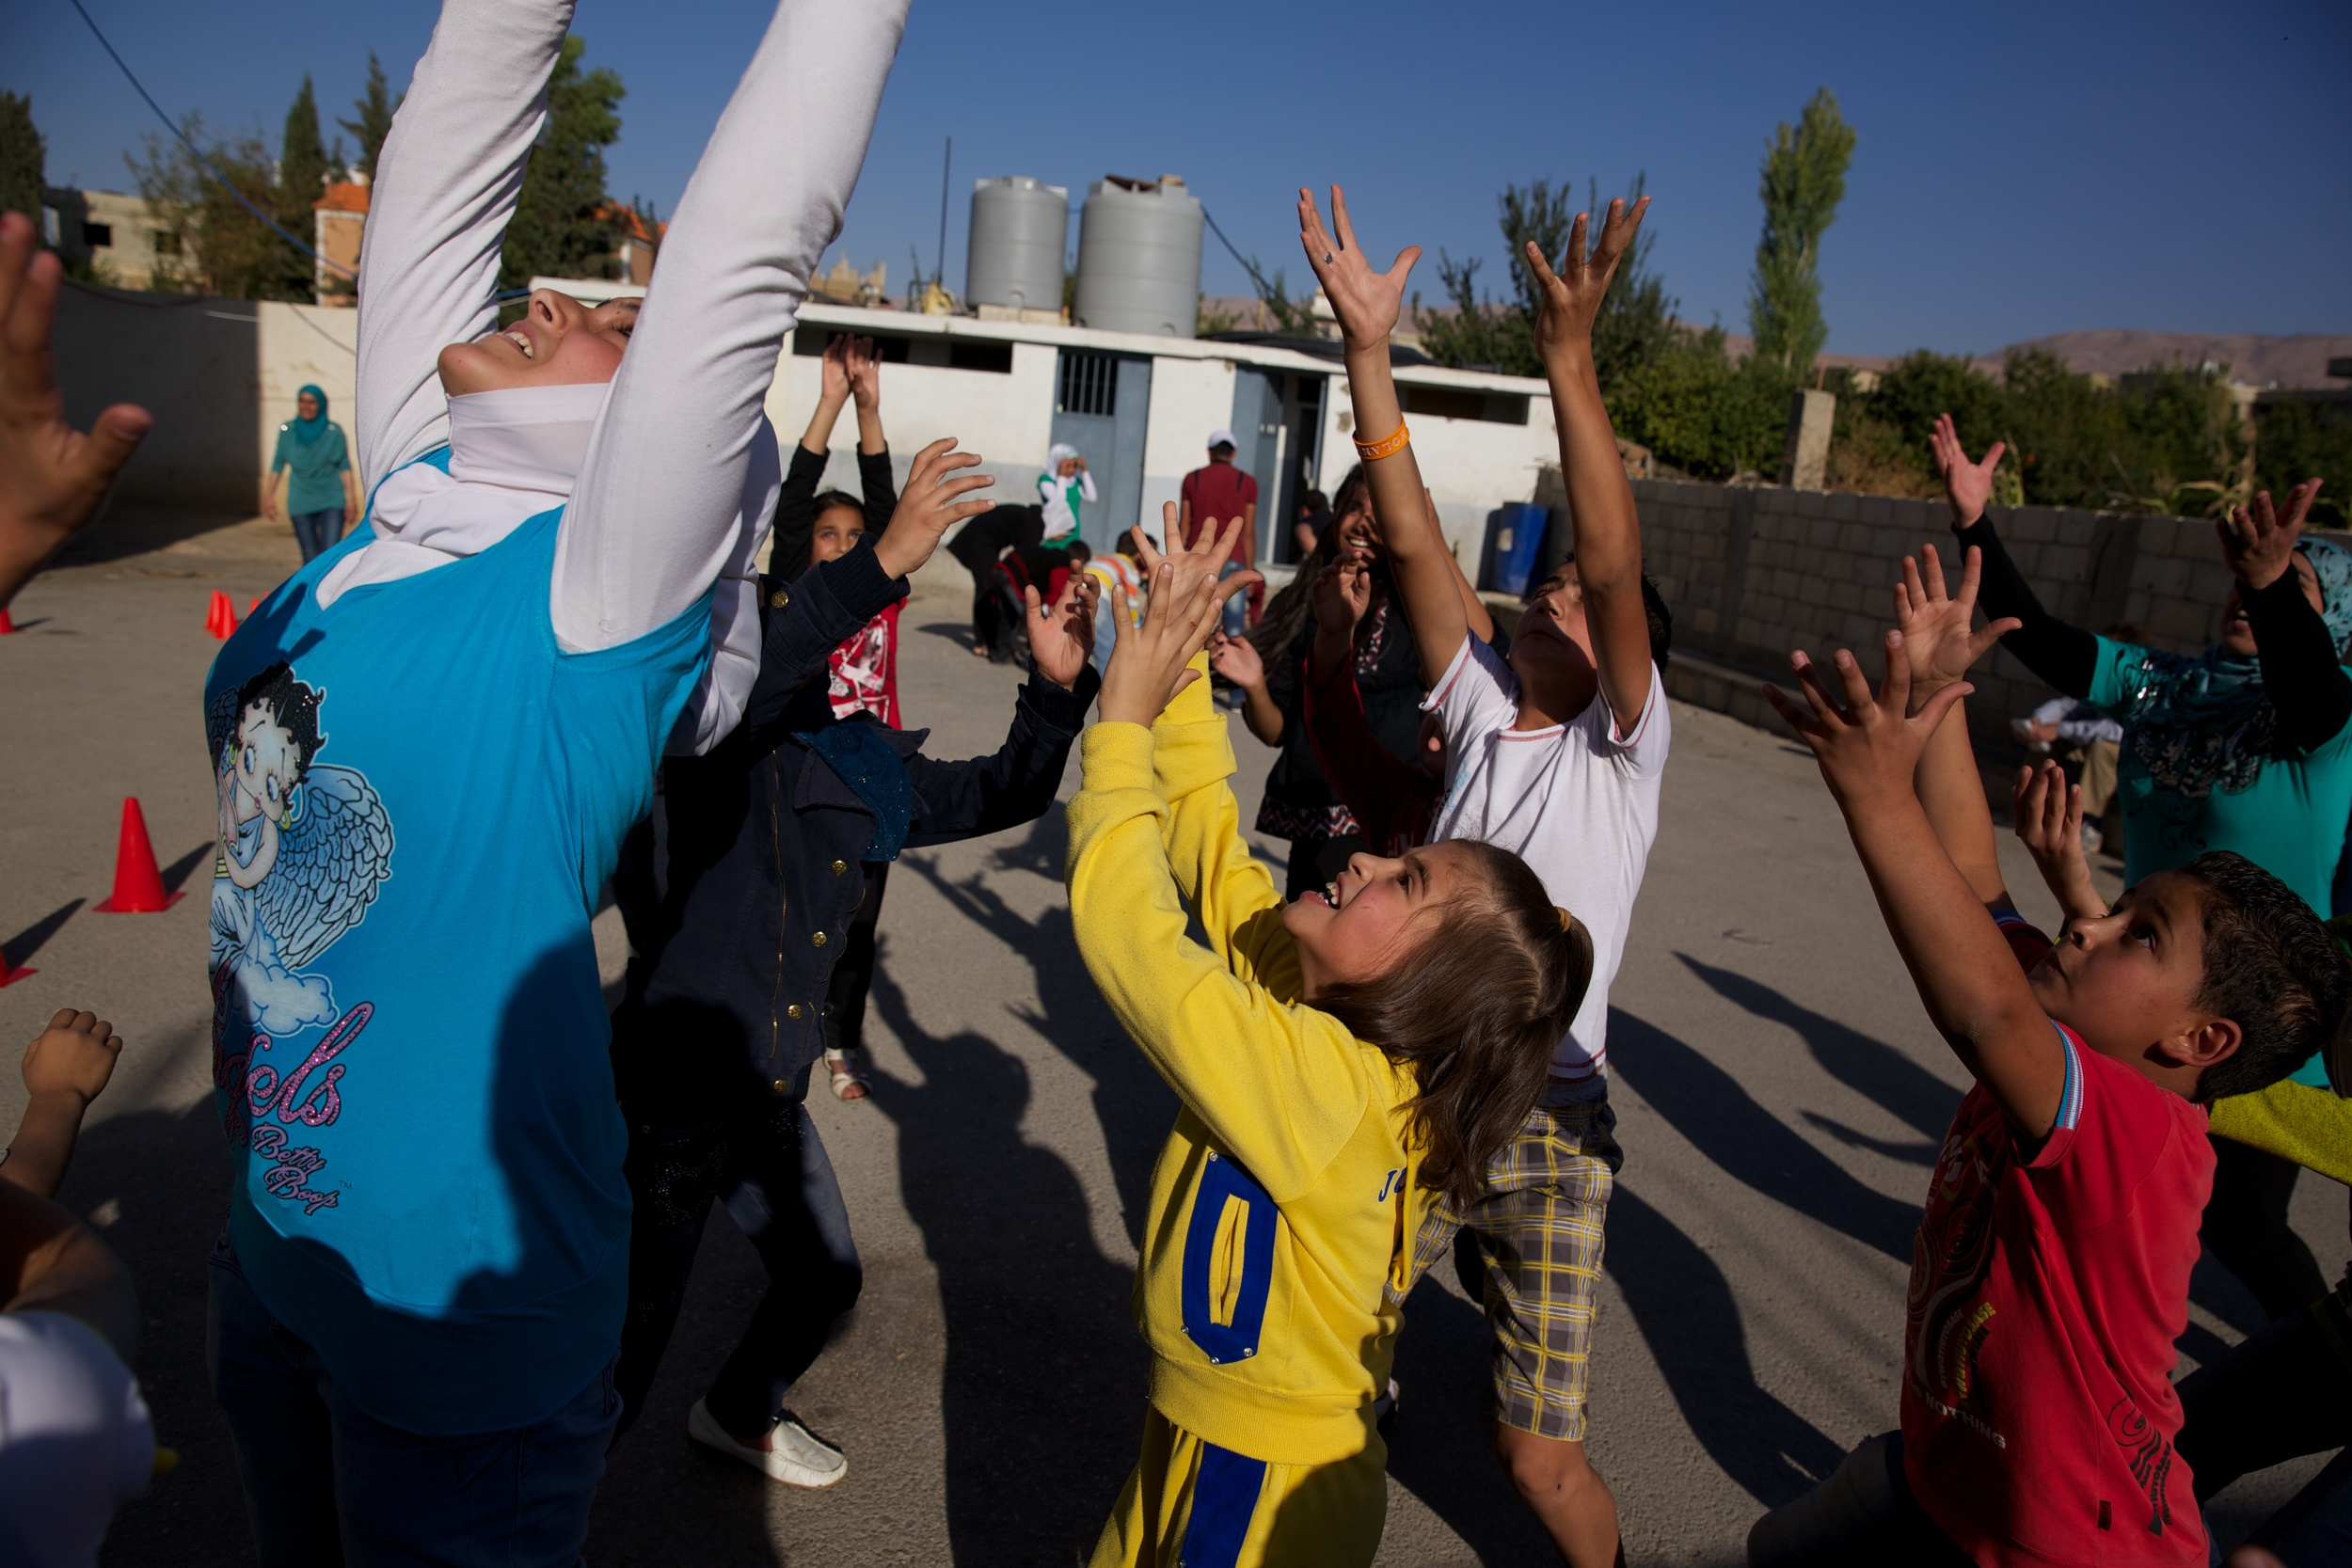 Syrian refugees play games at an after school clinic operated by Portland-based Mercy Corps in Lebanon.